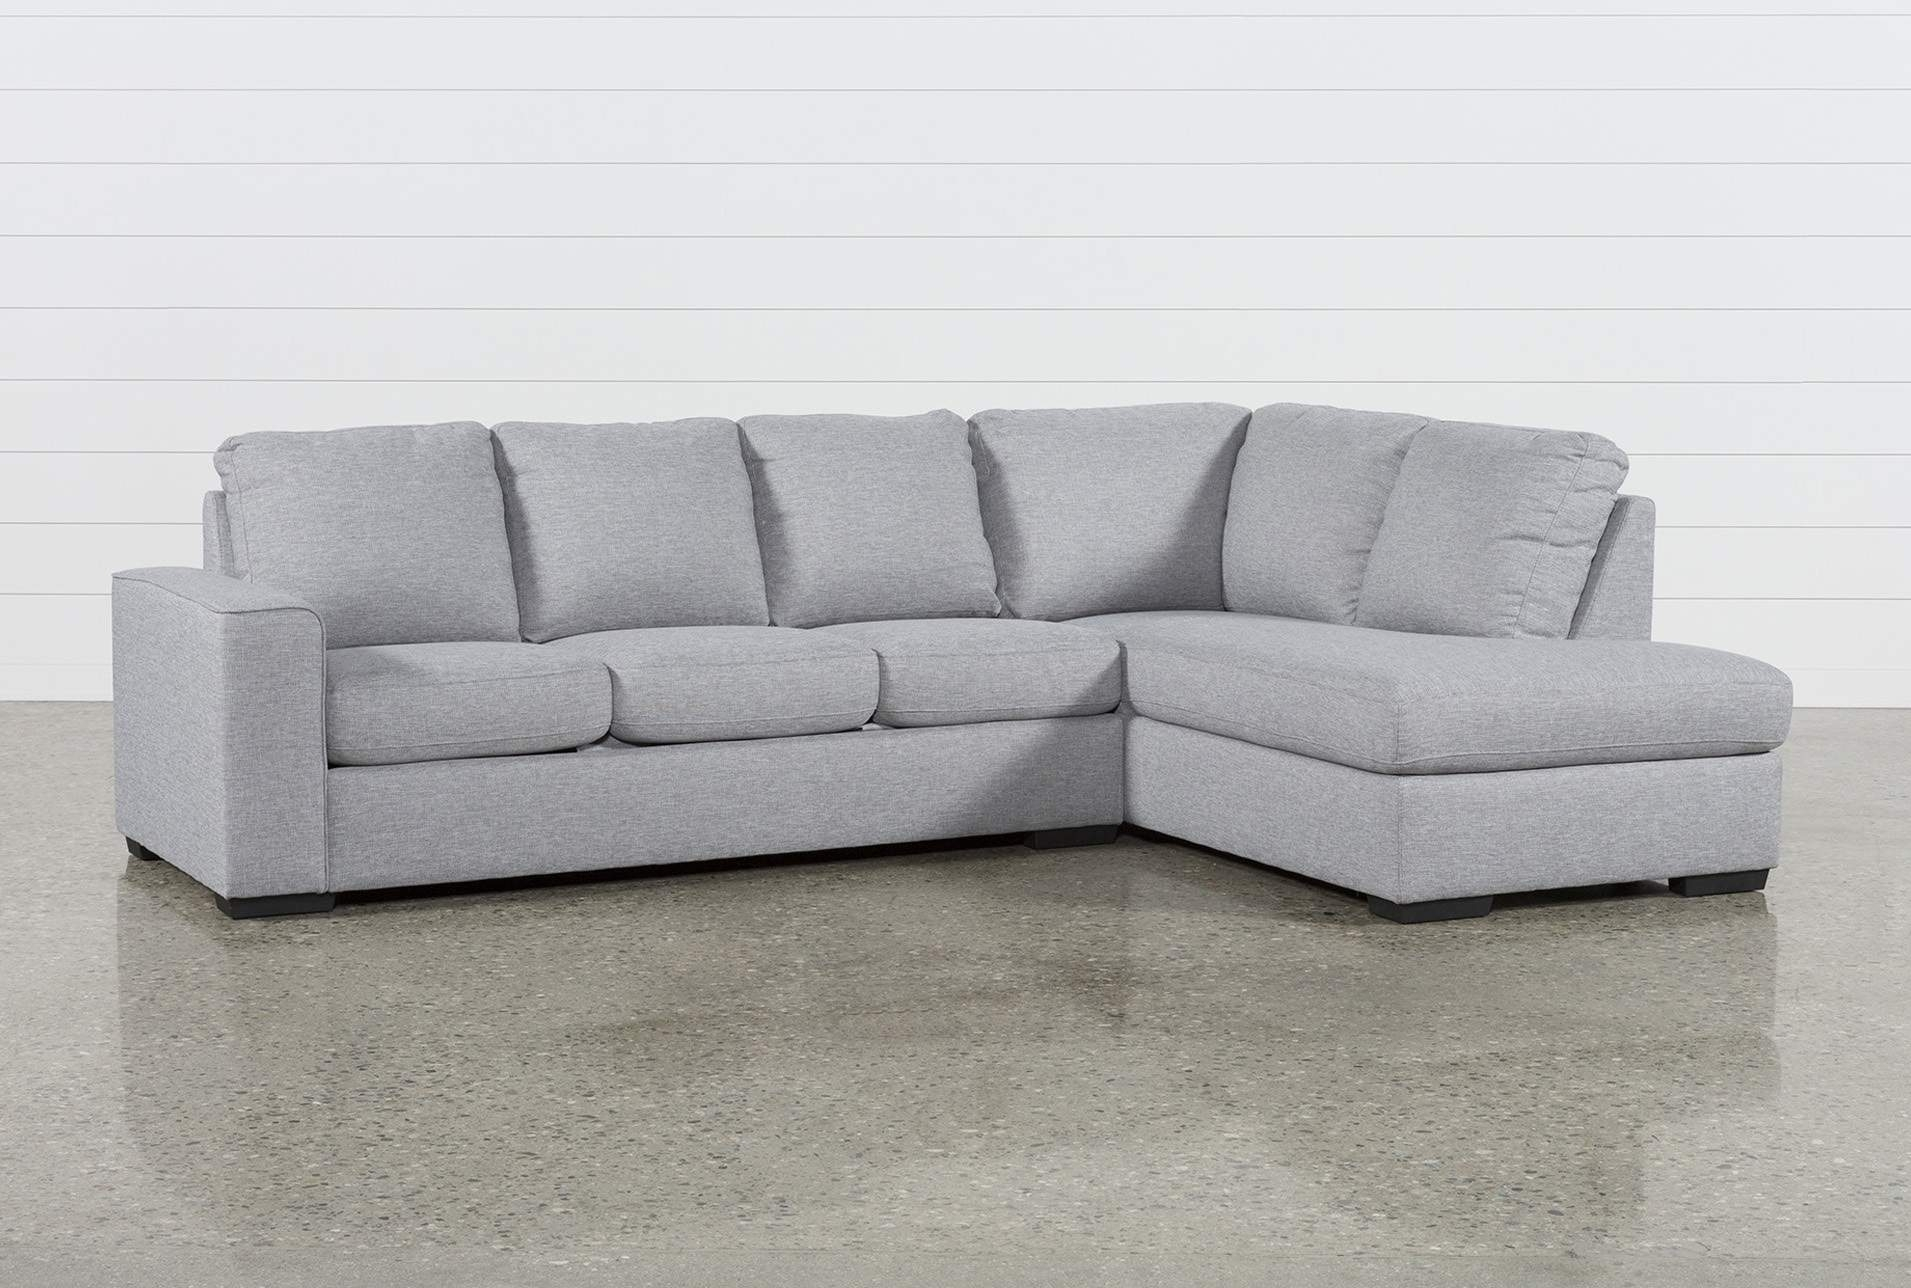 Lucy Grey 2 Piece Sectional W/raf Chaise | Products | Pinterest | Gray inside Lucy Dark Grey 2 Piece Sleeper Sectionals With Raf Chaise (Image 20 of 30)